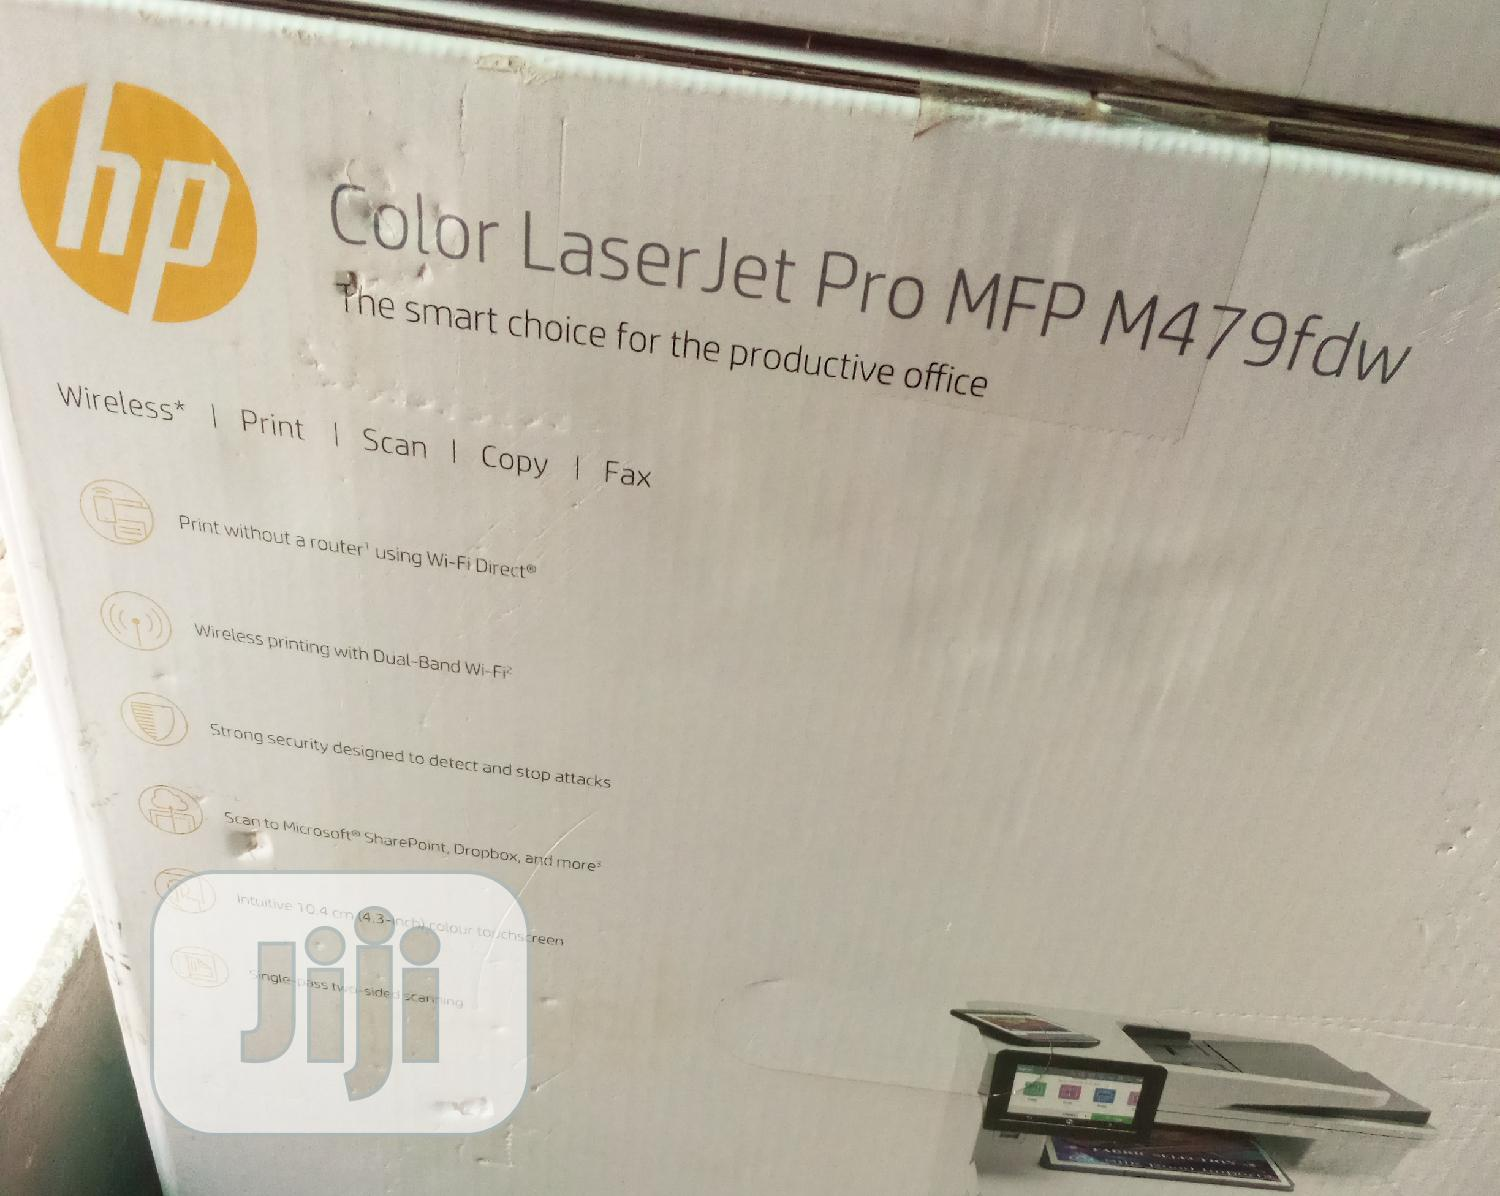 HP Color Laserjet Pro MFP M479fdw | Printers & Scanners for sale in Ikeja, Lagos State, Nigeria